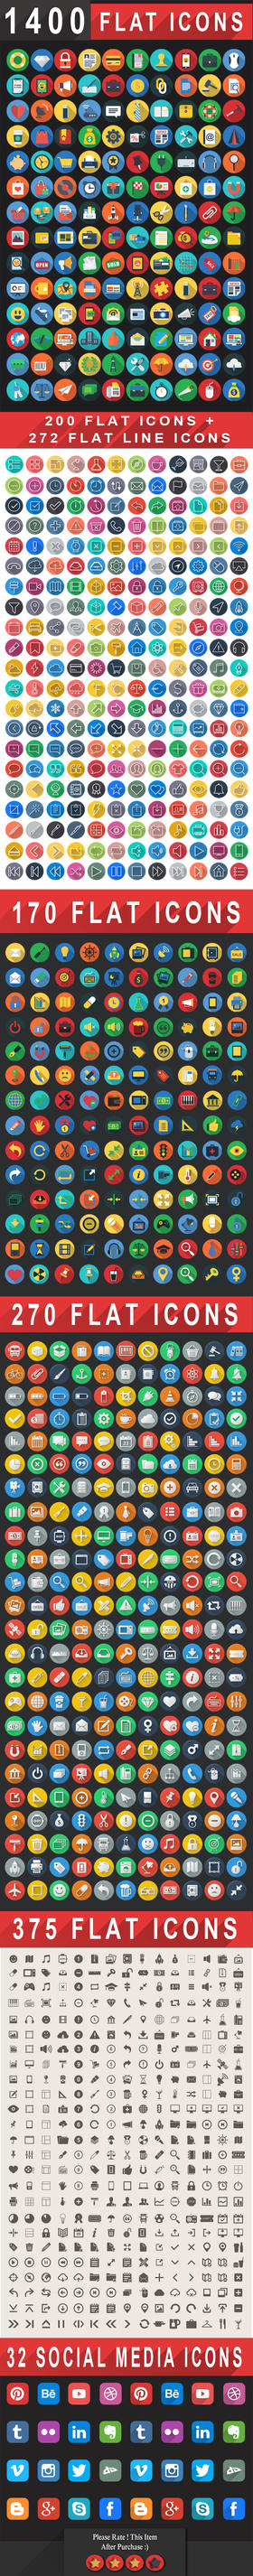 1400+ Flat Icons - Colorful Flat Icons Set   iOS9 by CURSORCH